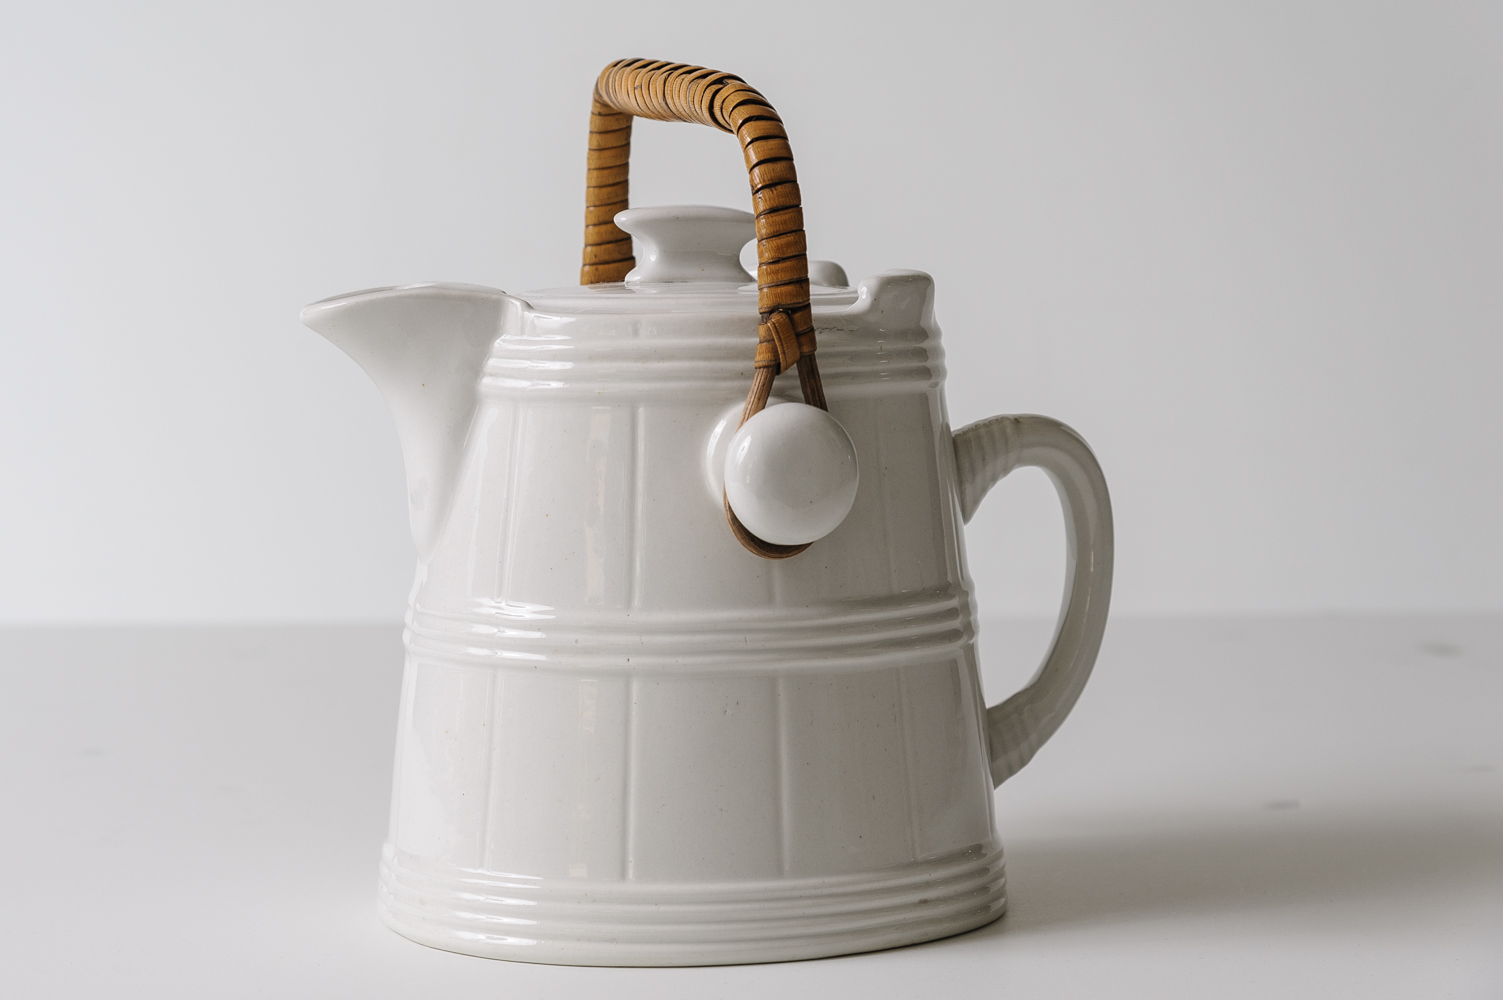 Antique Ironstone Hot Water Pitcher On Antique Row